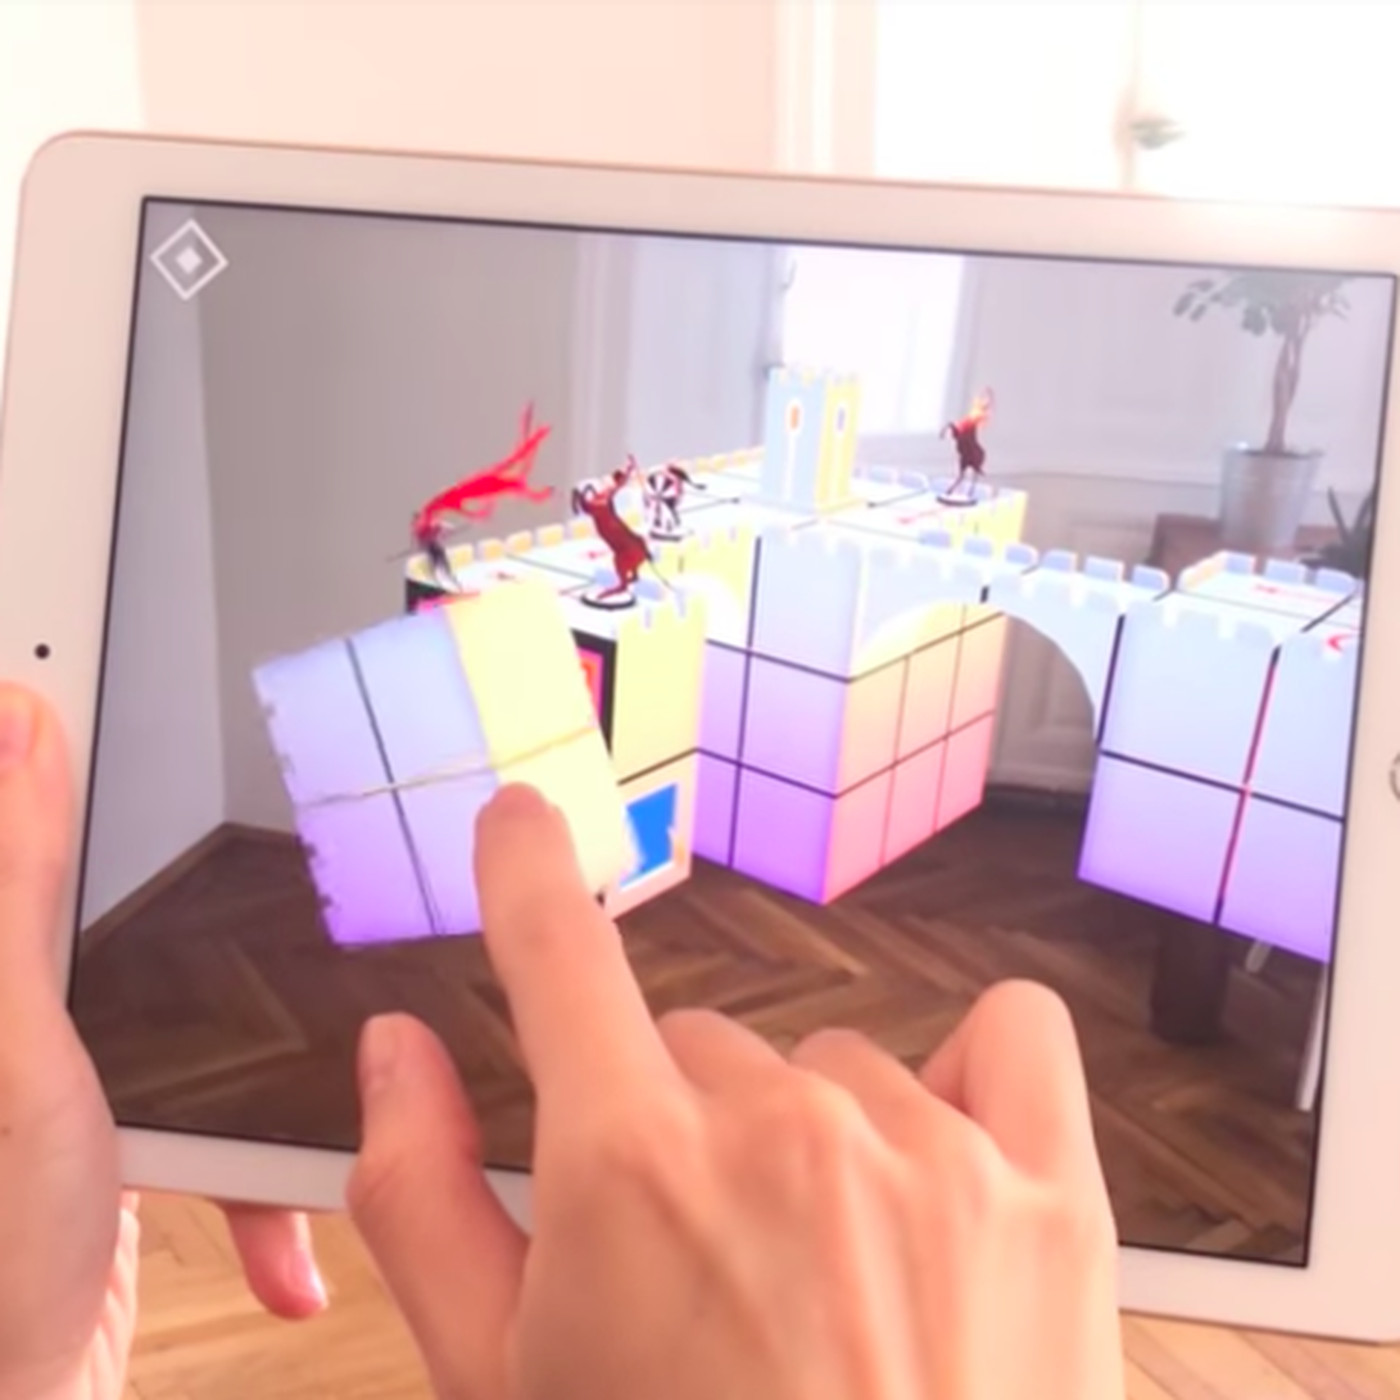 9 cool AR apps you should download to try out iOS 11's ARKit